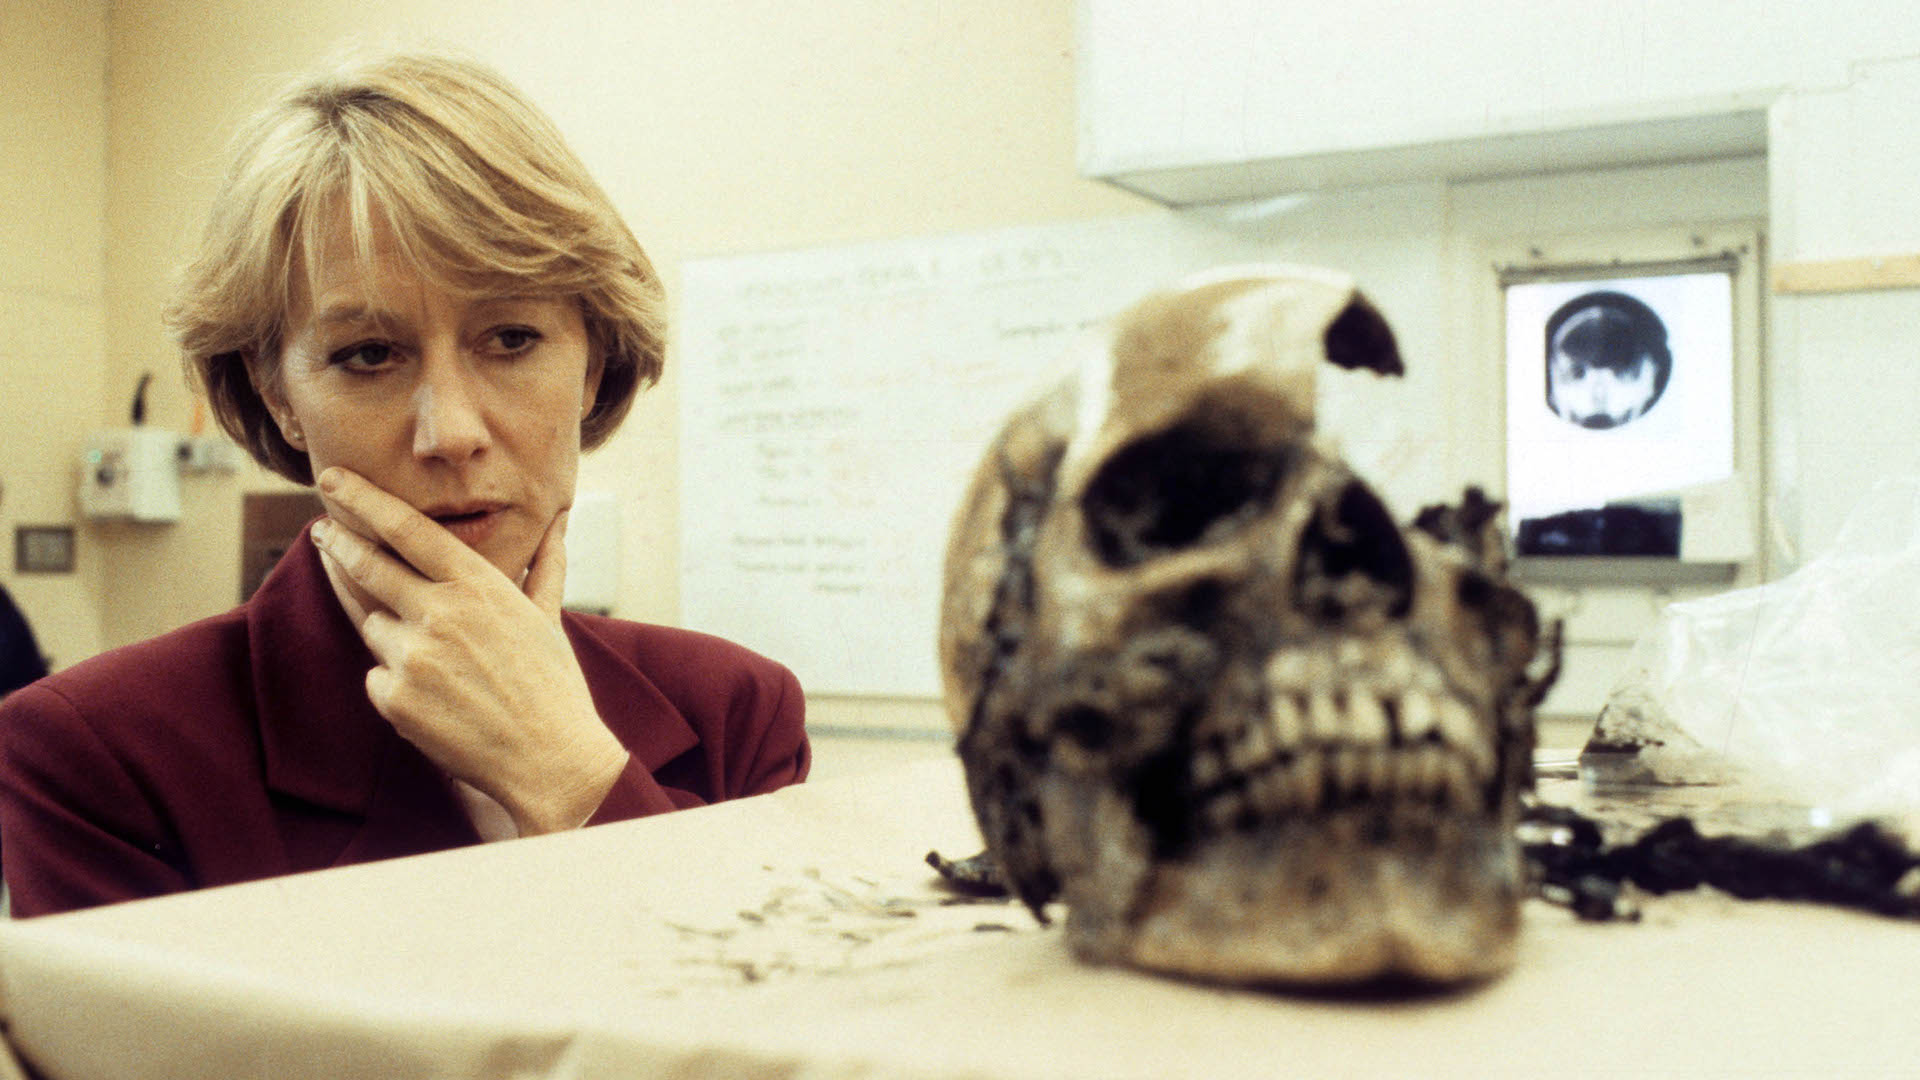 Helen Mirren, as Detective Jane Tennison in Prime Suspect, looks at the skull of a murder victim.